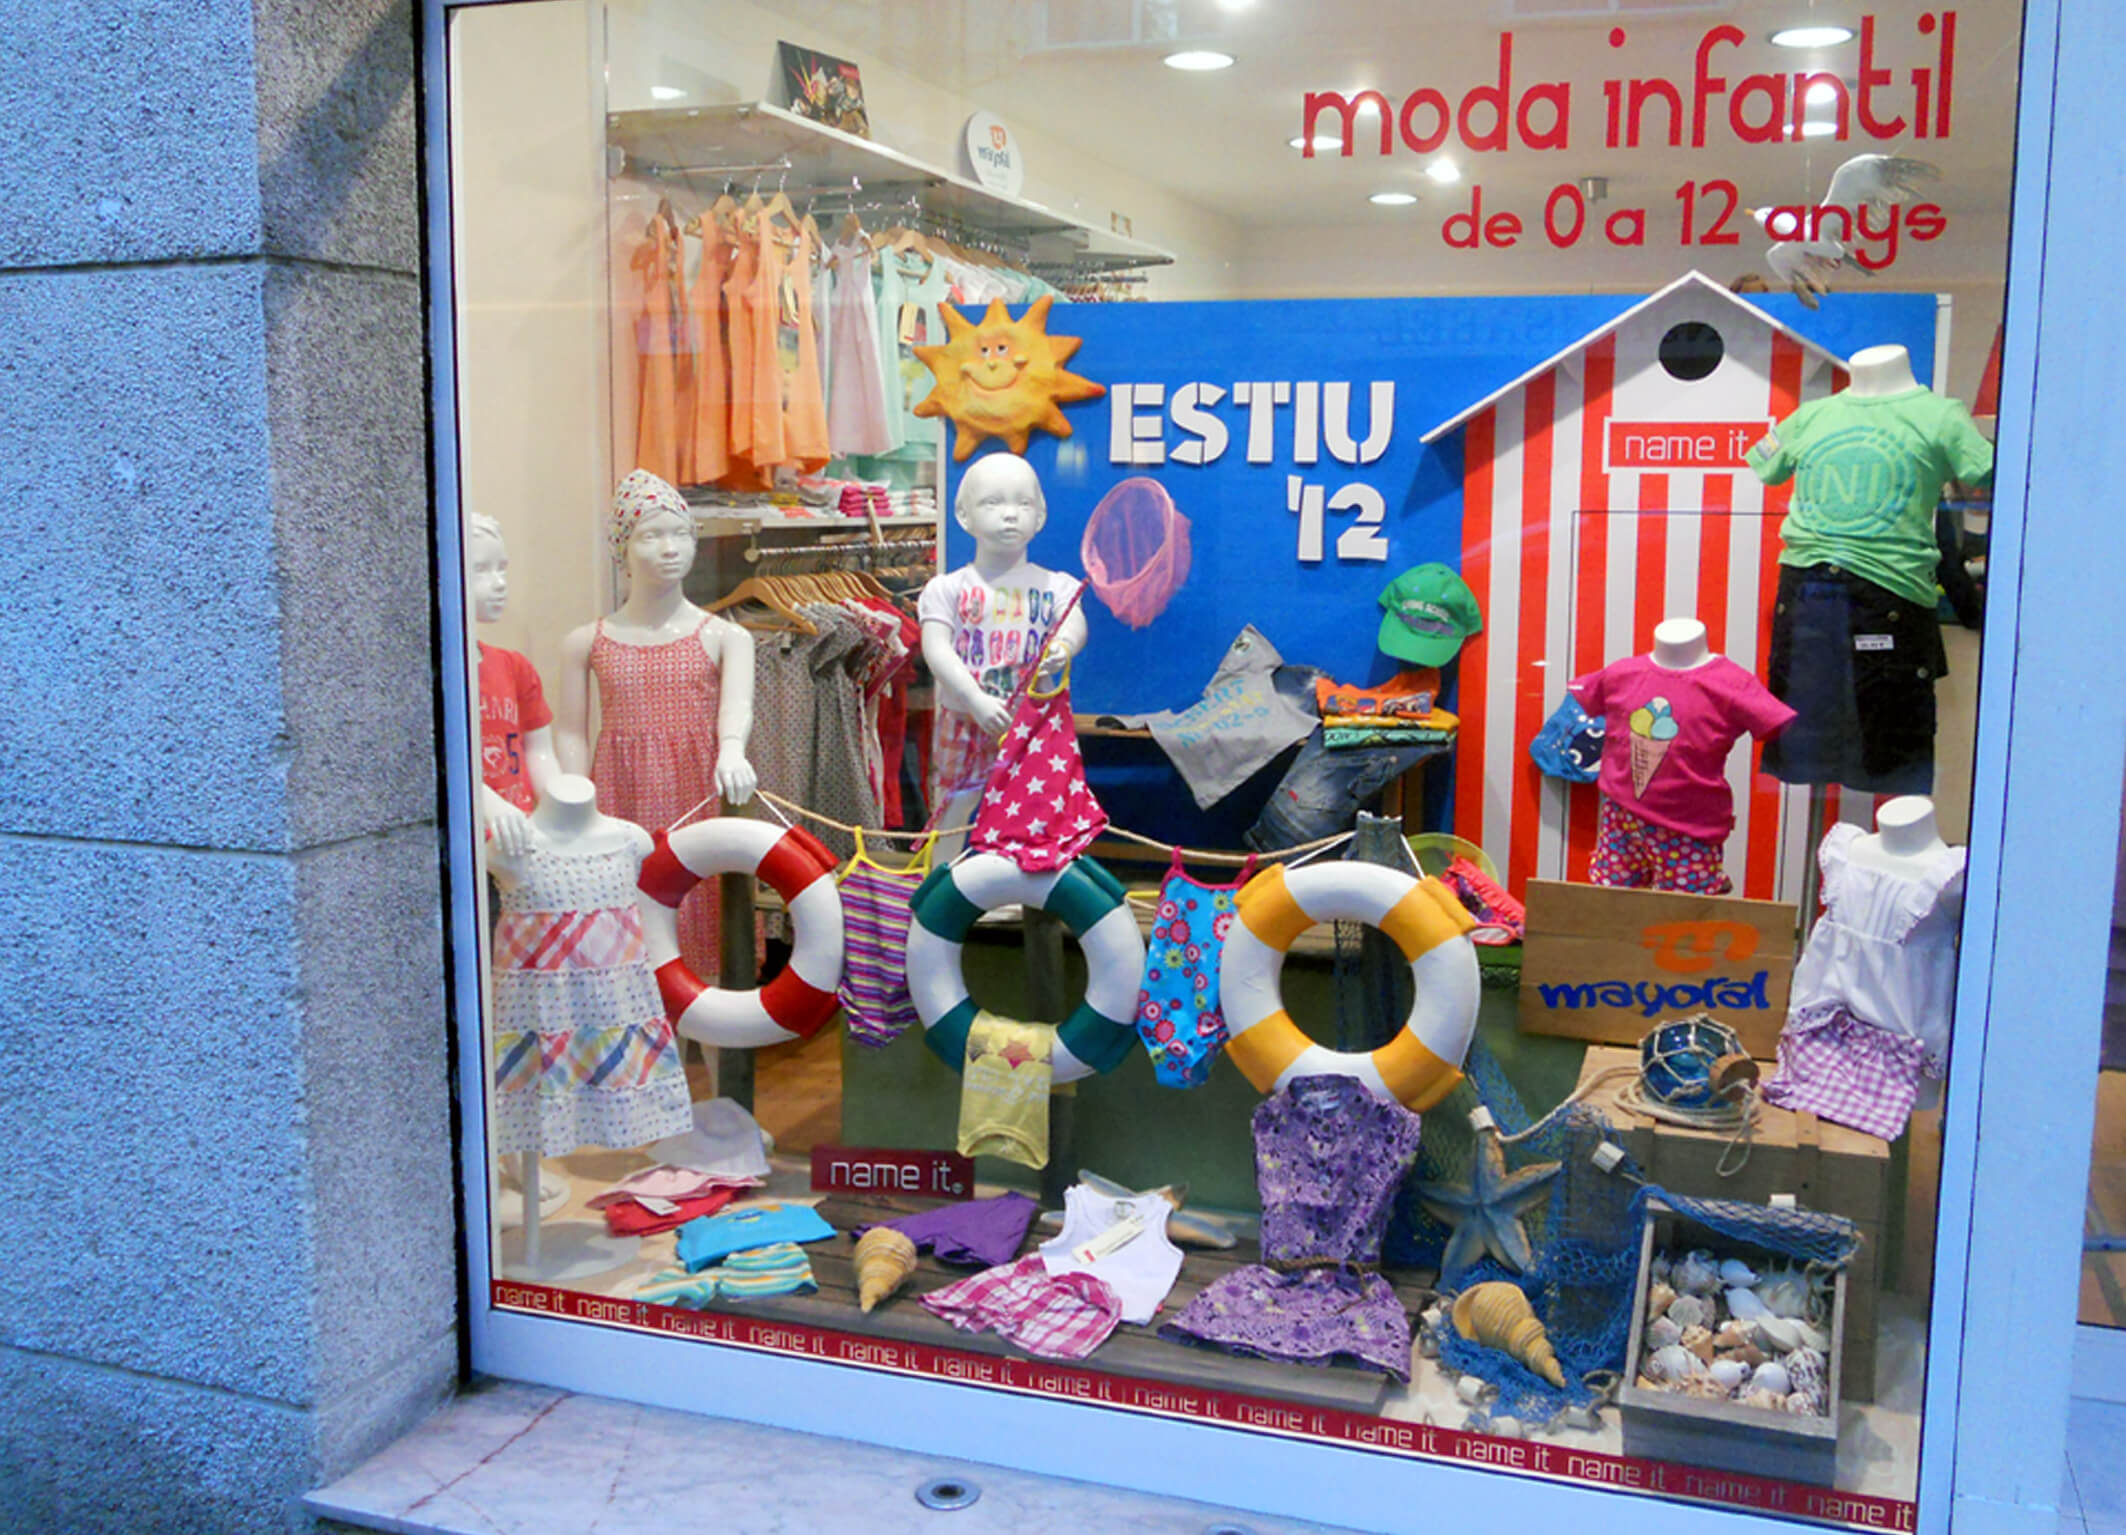 Escaparate verano para children escaparates de verano - Articulos para decoracion escaparates ...